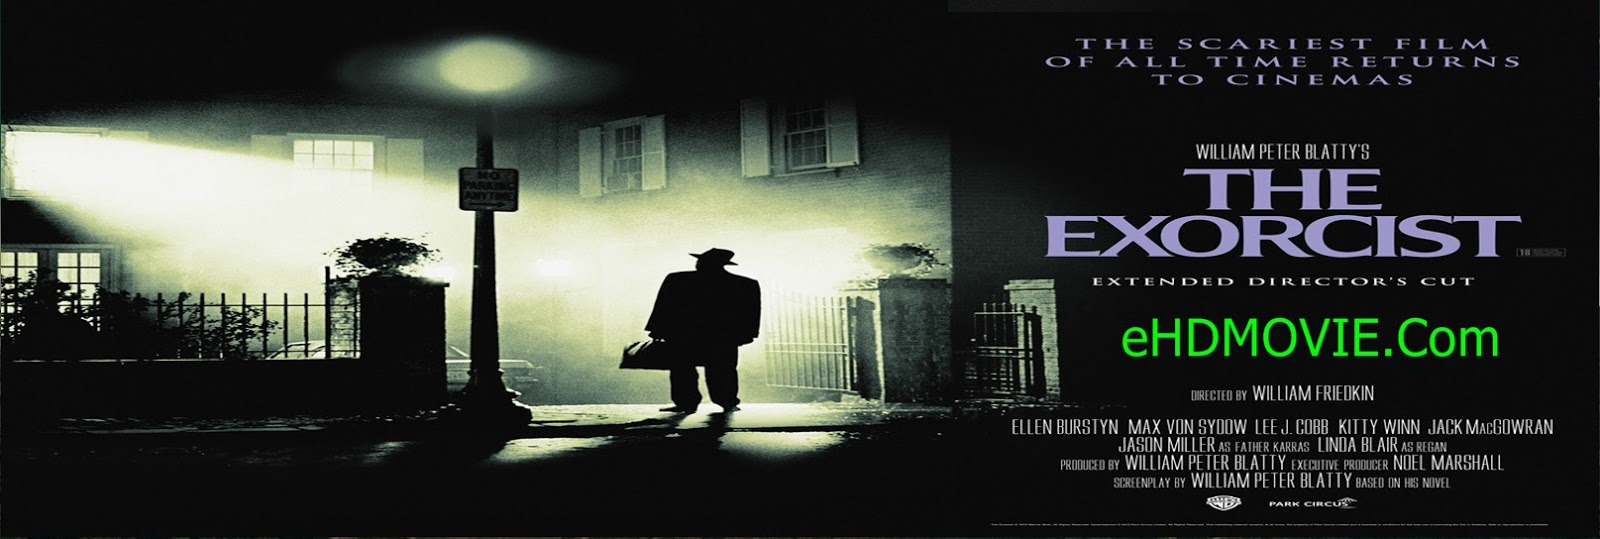 The Exorcist 1973 Full Movie Dual Audio [Hindi – English] 720p - HEVC - 480p ORG BRRip 300MB - 550MB - 1.6GB ESubs Free Download